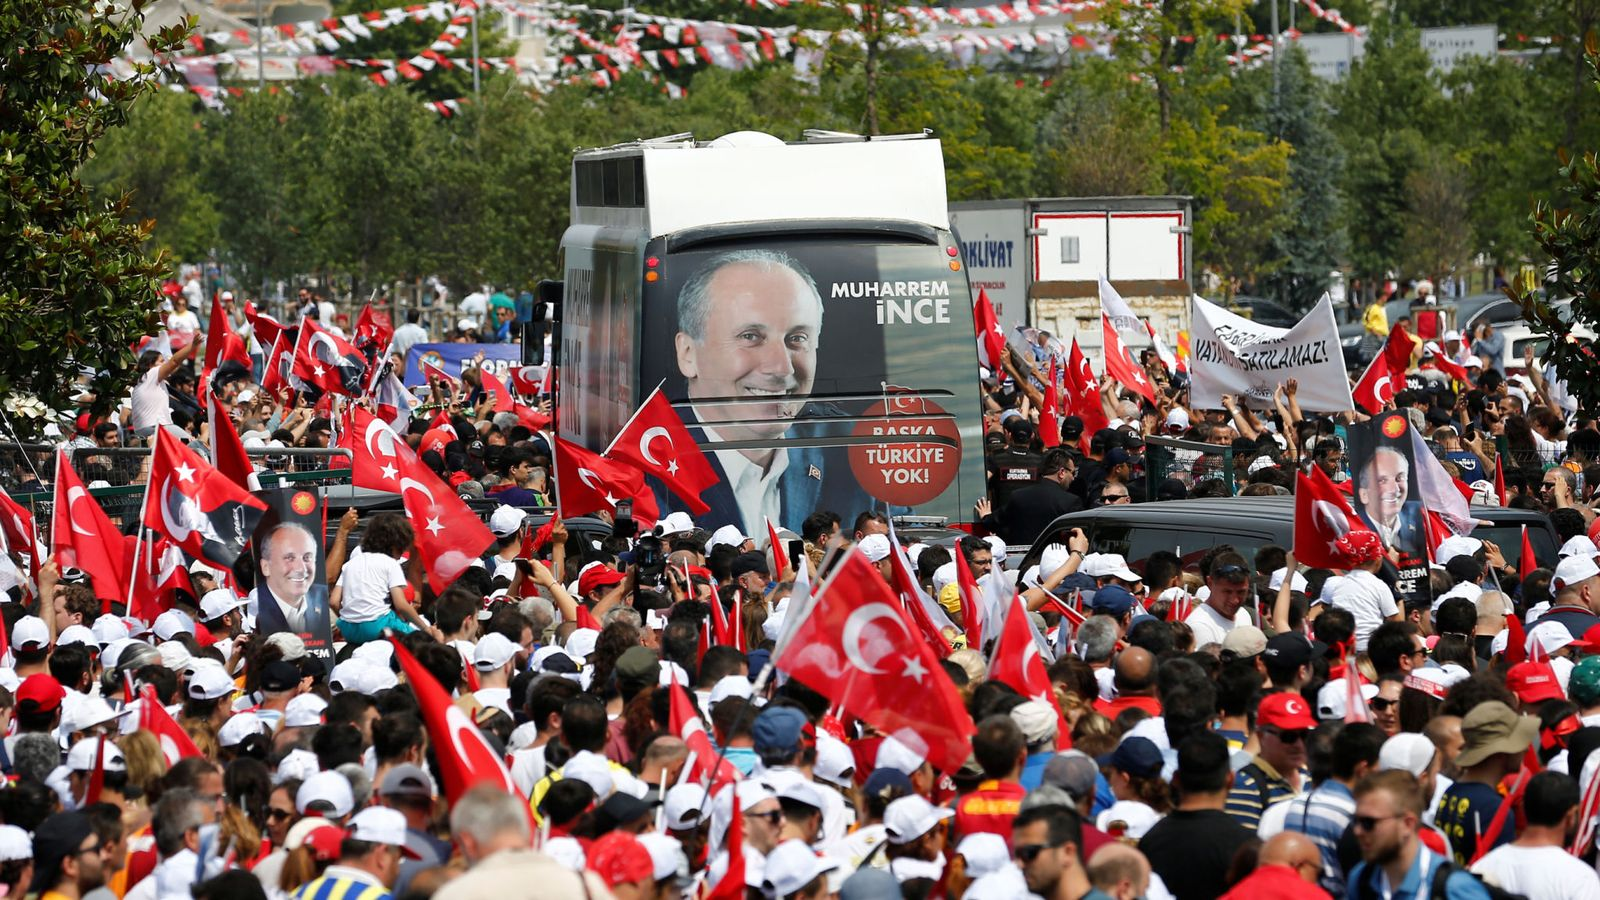 Final rallies in Turkey ahead of crucial election (Details)